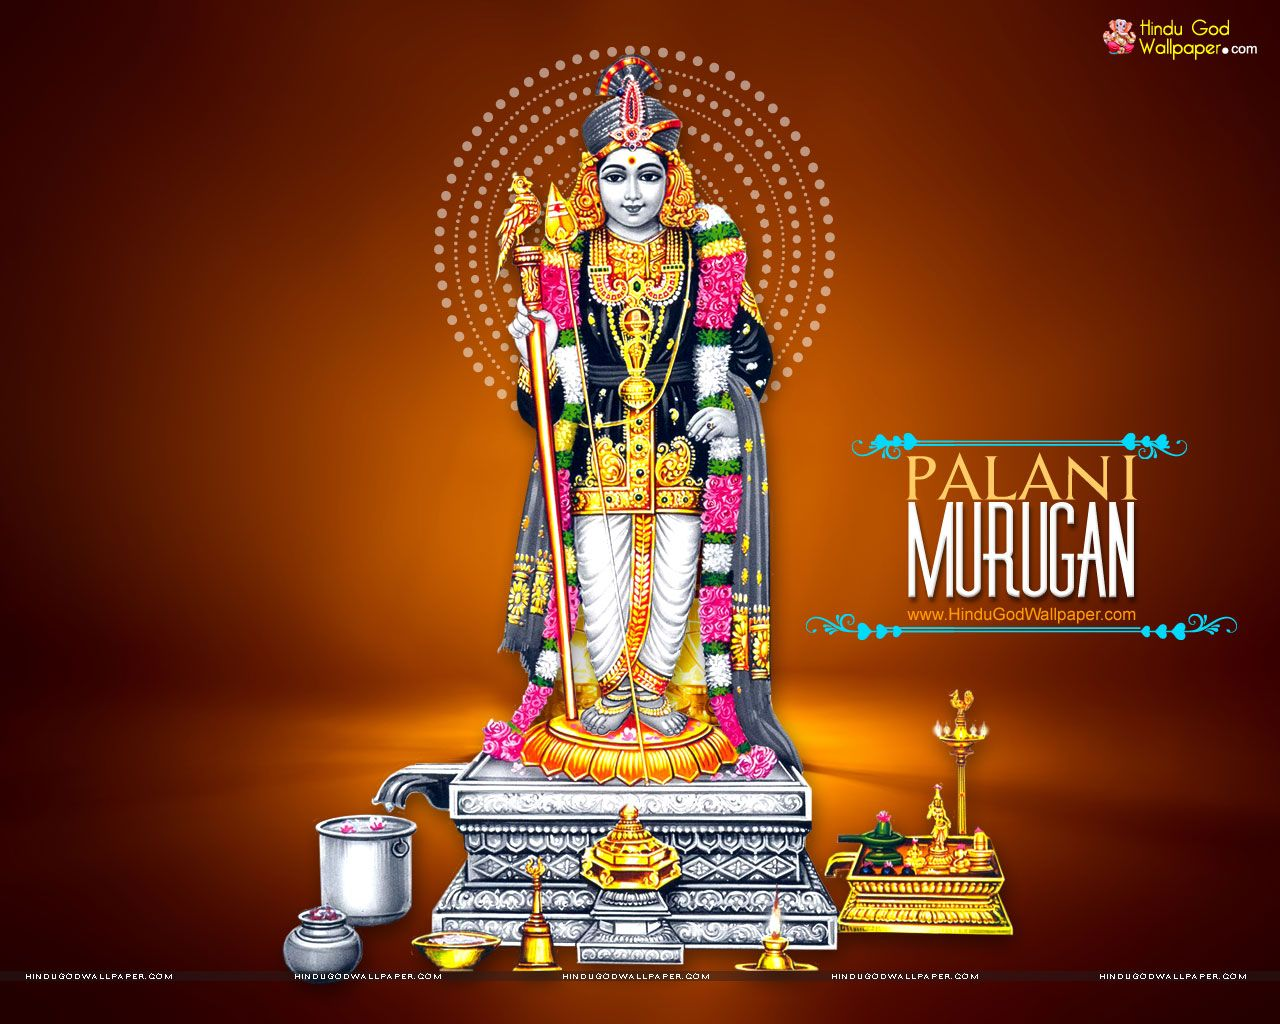 Palani Murugan Wallpapers P Os Free Download